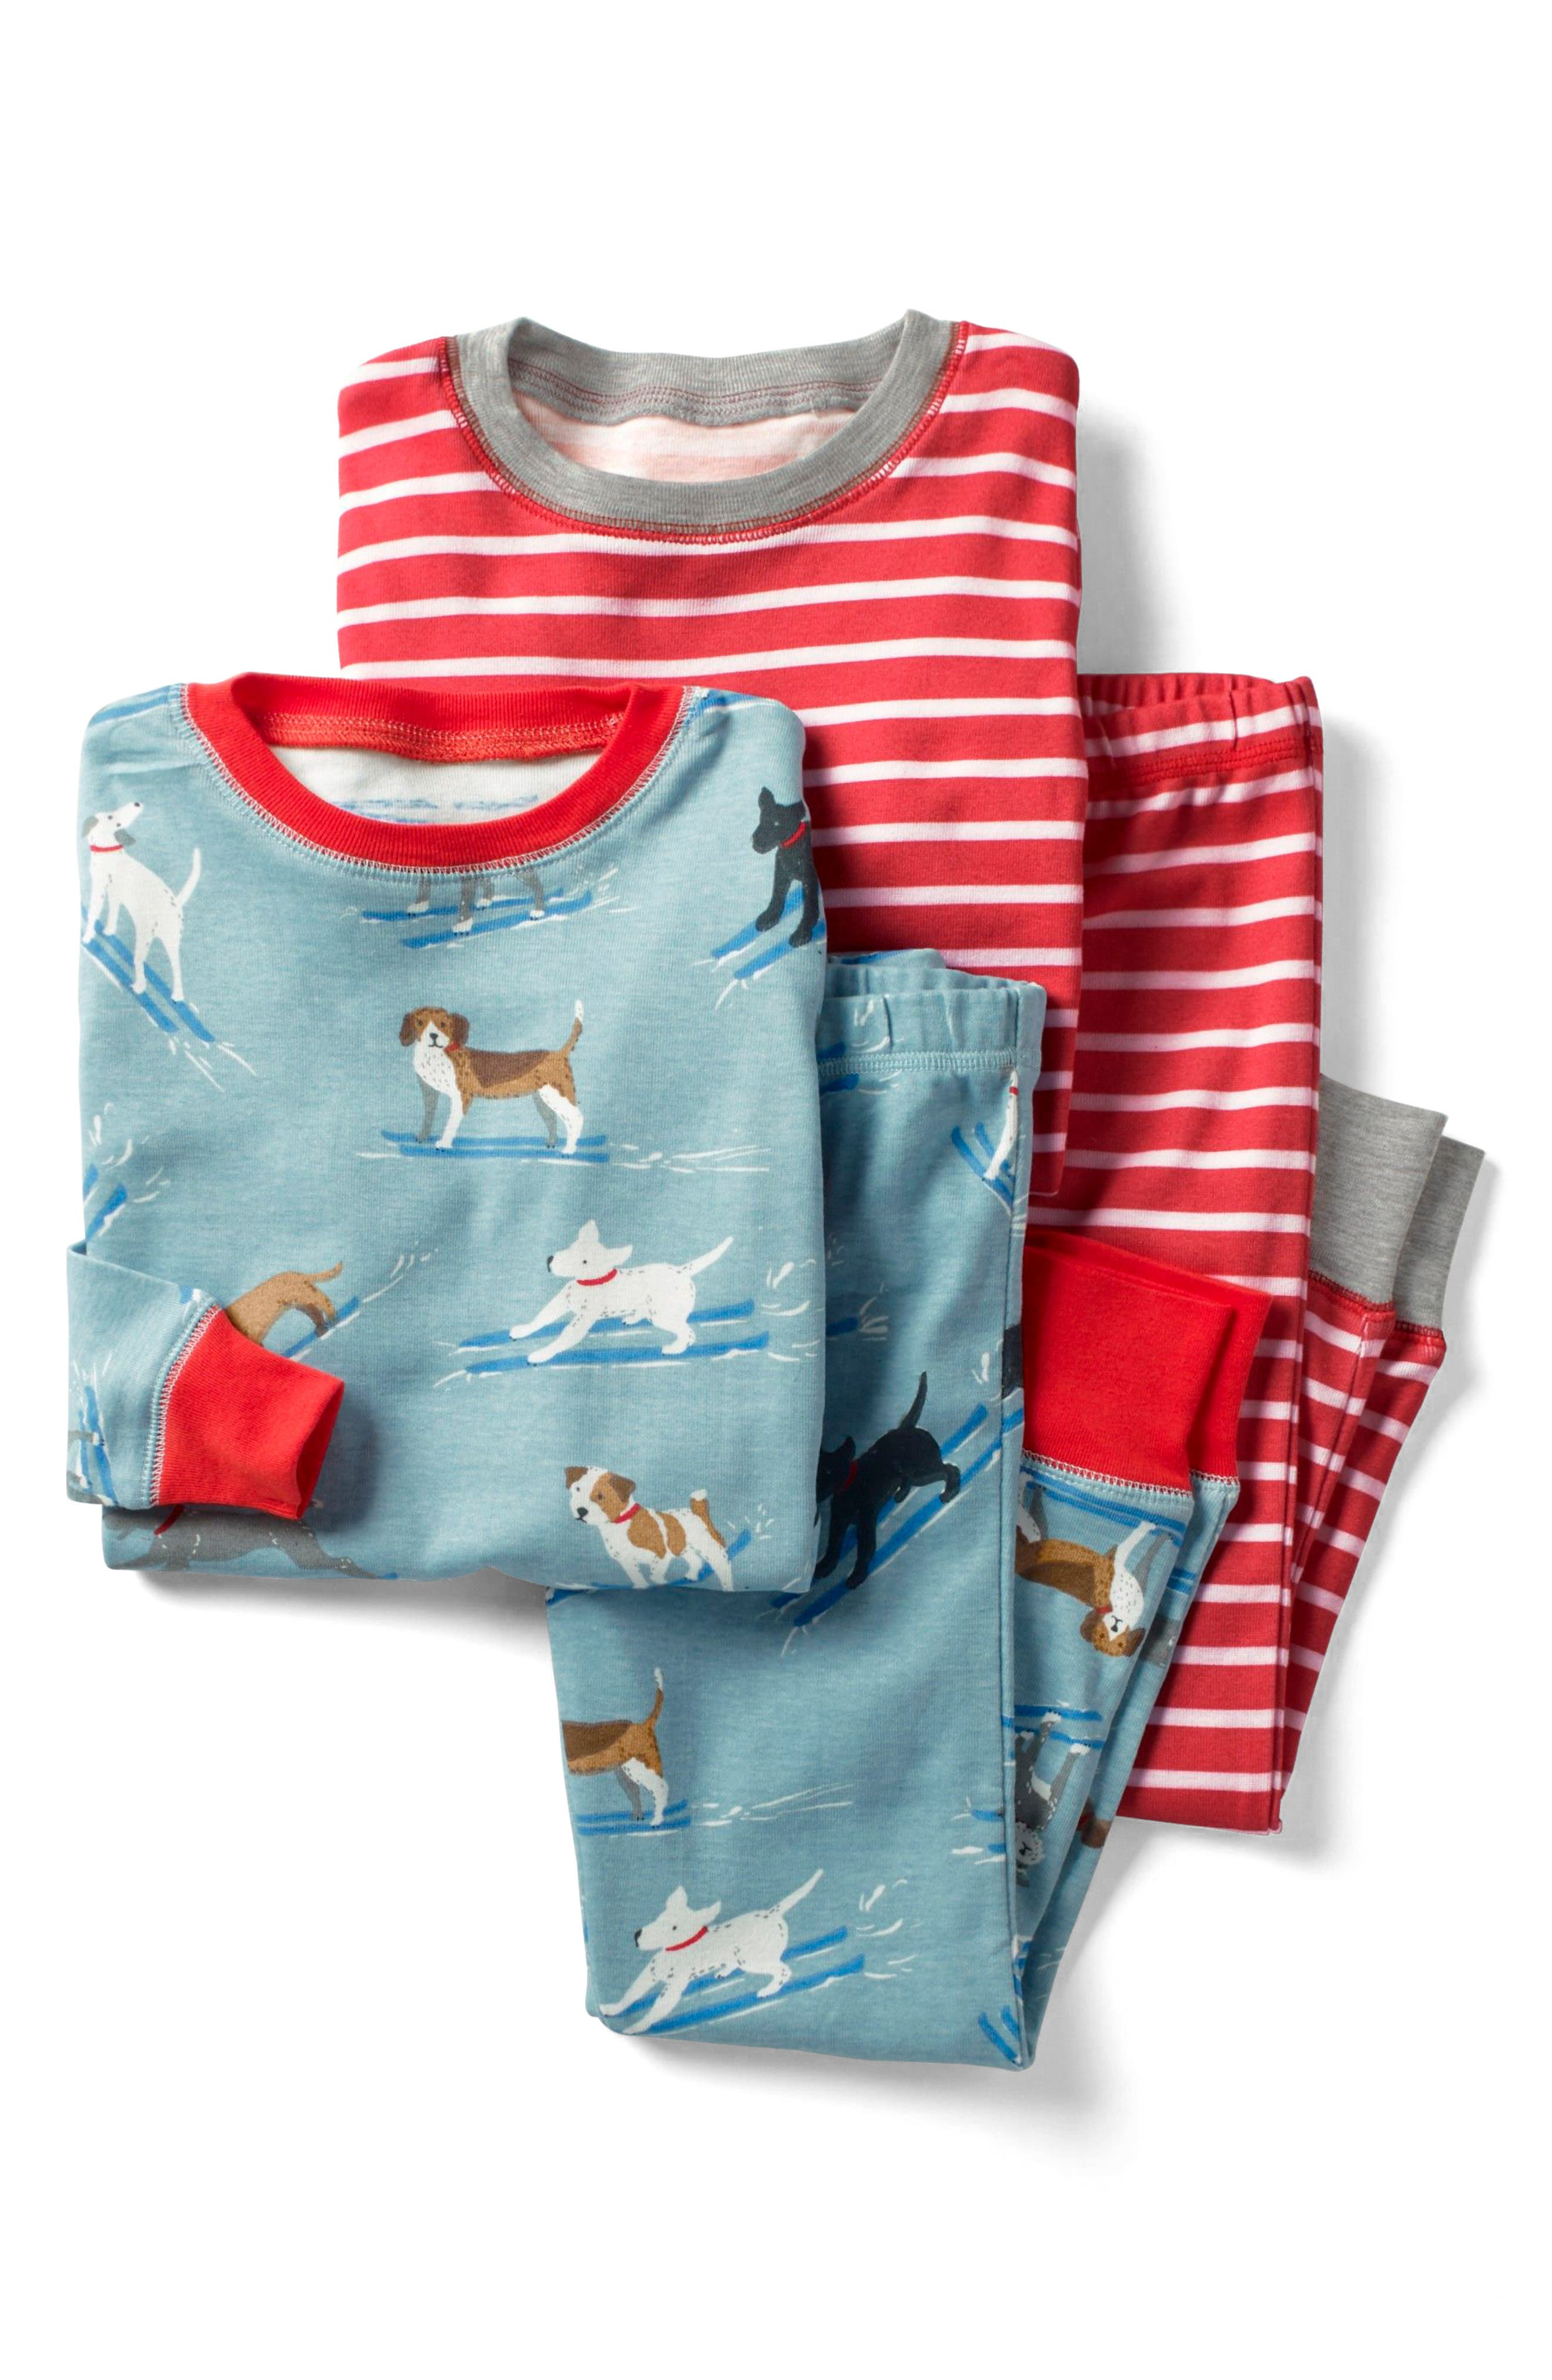 Main Image - Mini Boden Cosy 2-Pack Two-Piece Fitted Pajamas (Toddler Boys, Little Boys & Big Boys)